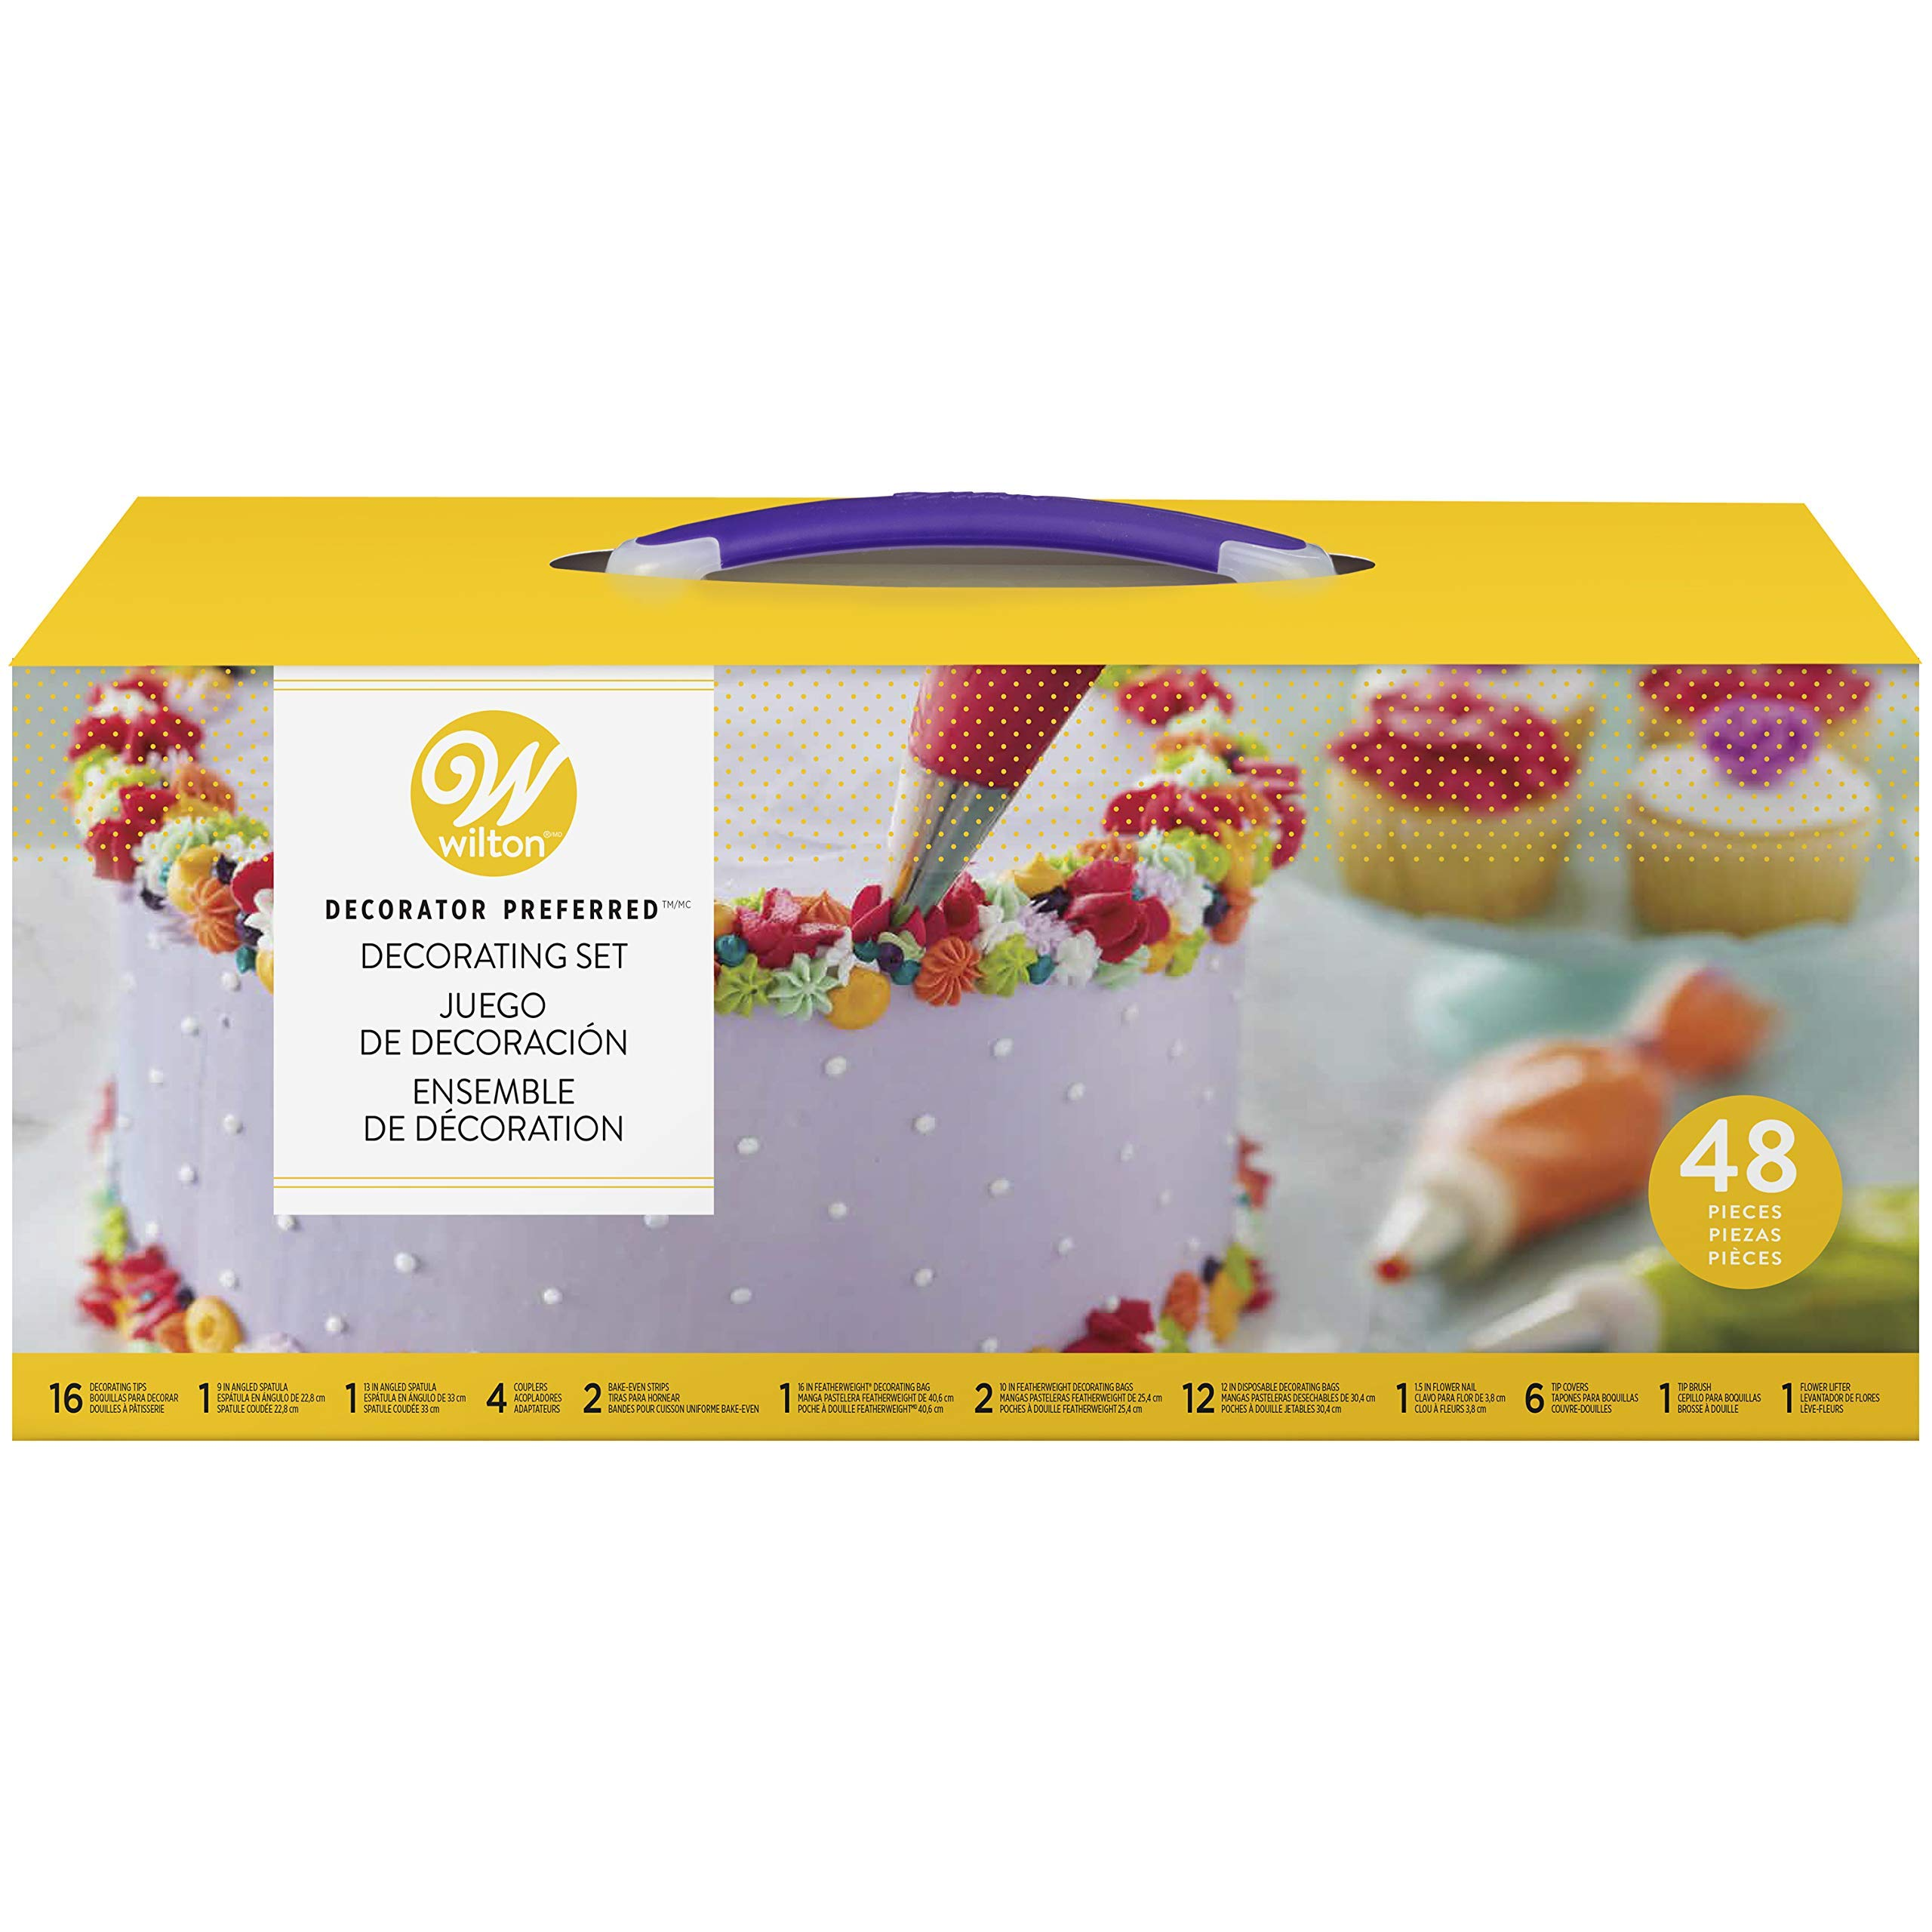 Wilton Decorator Preferred Buttercream Cake Decorating Set, Creating Your Masterpiece is as Easy as Cake, 48-Piece (Renewed)